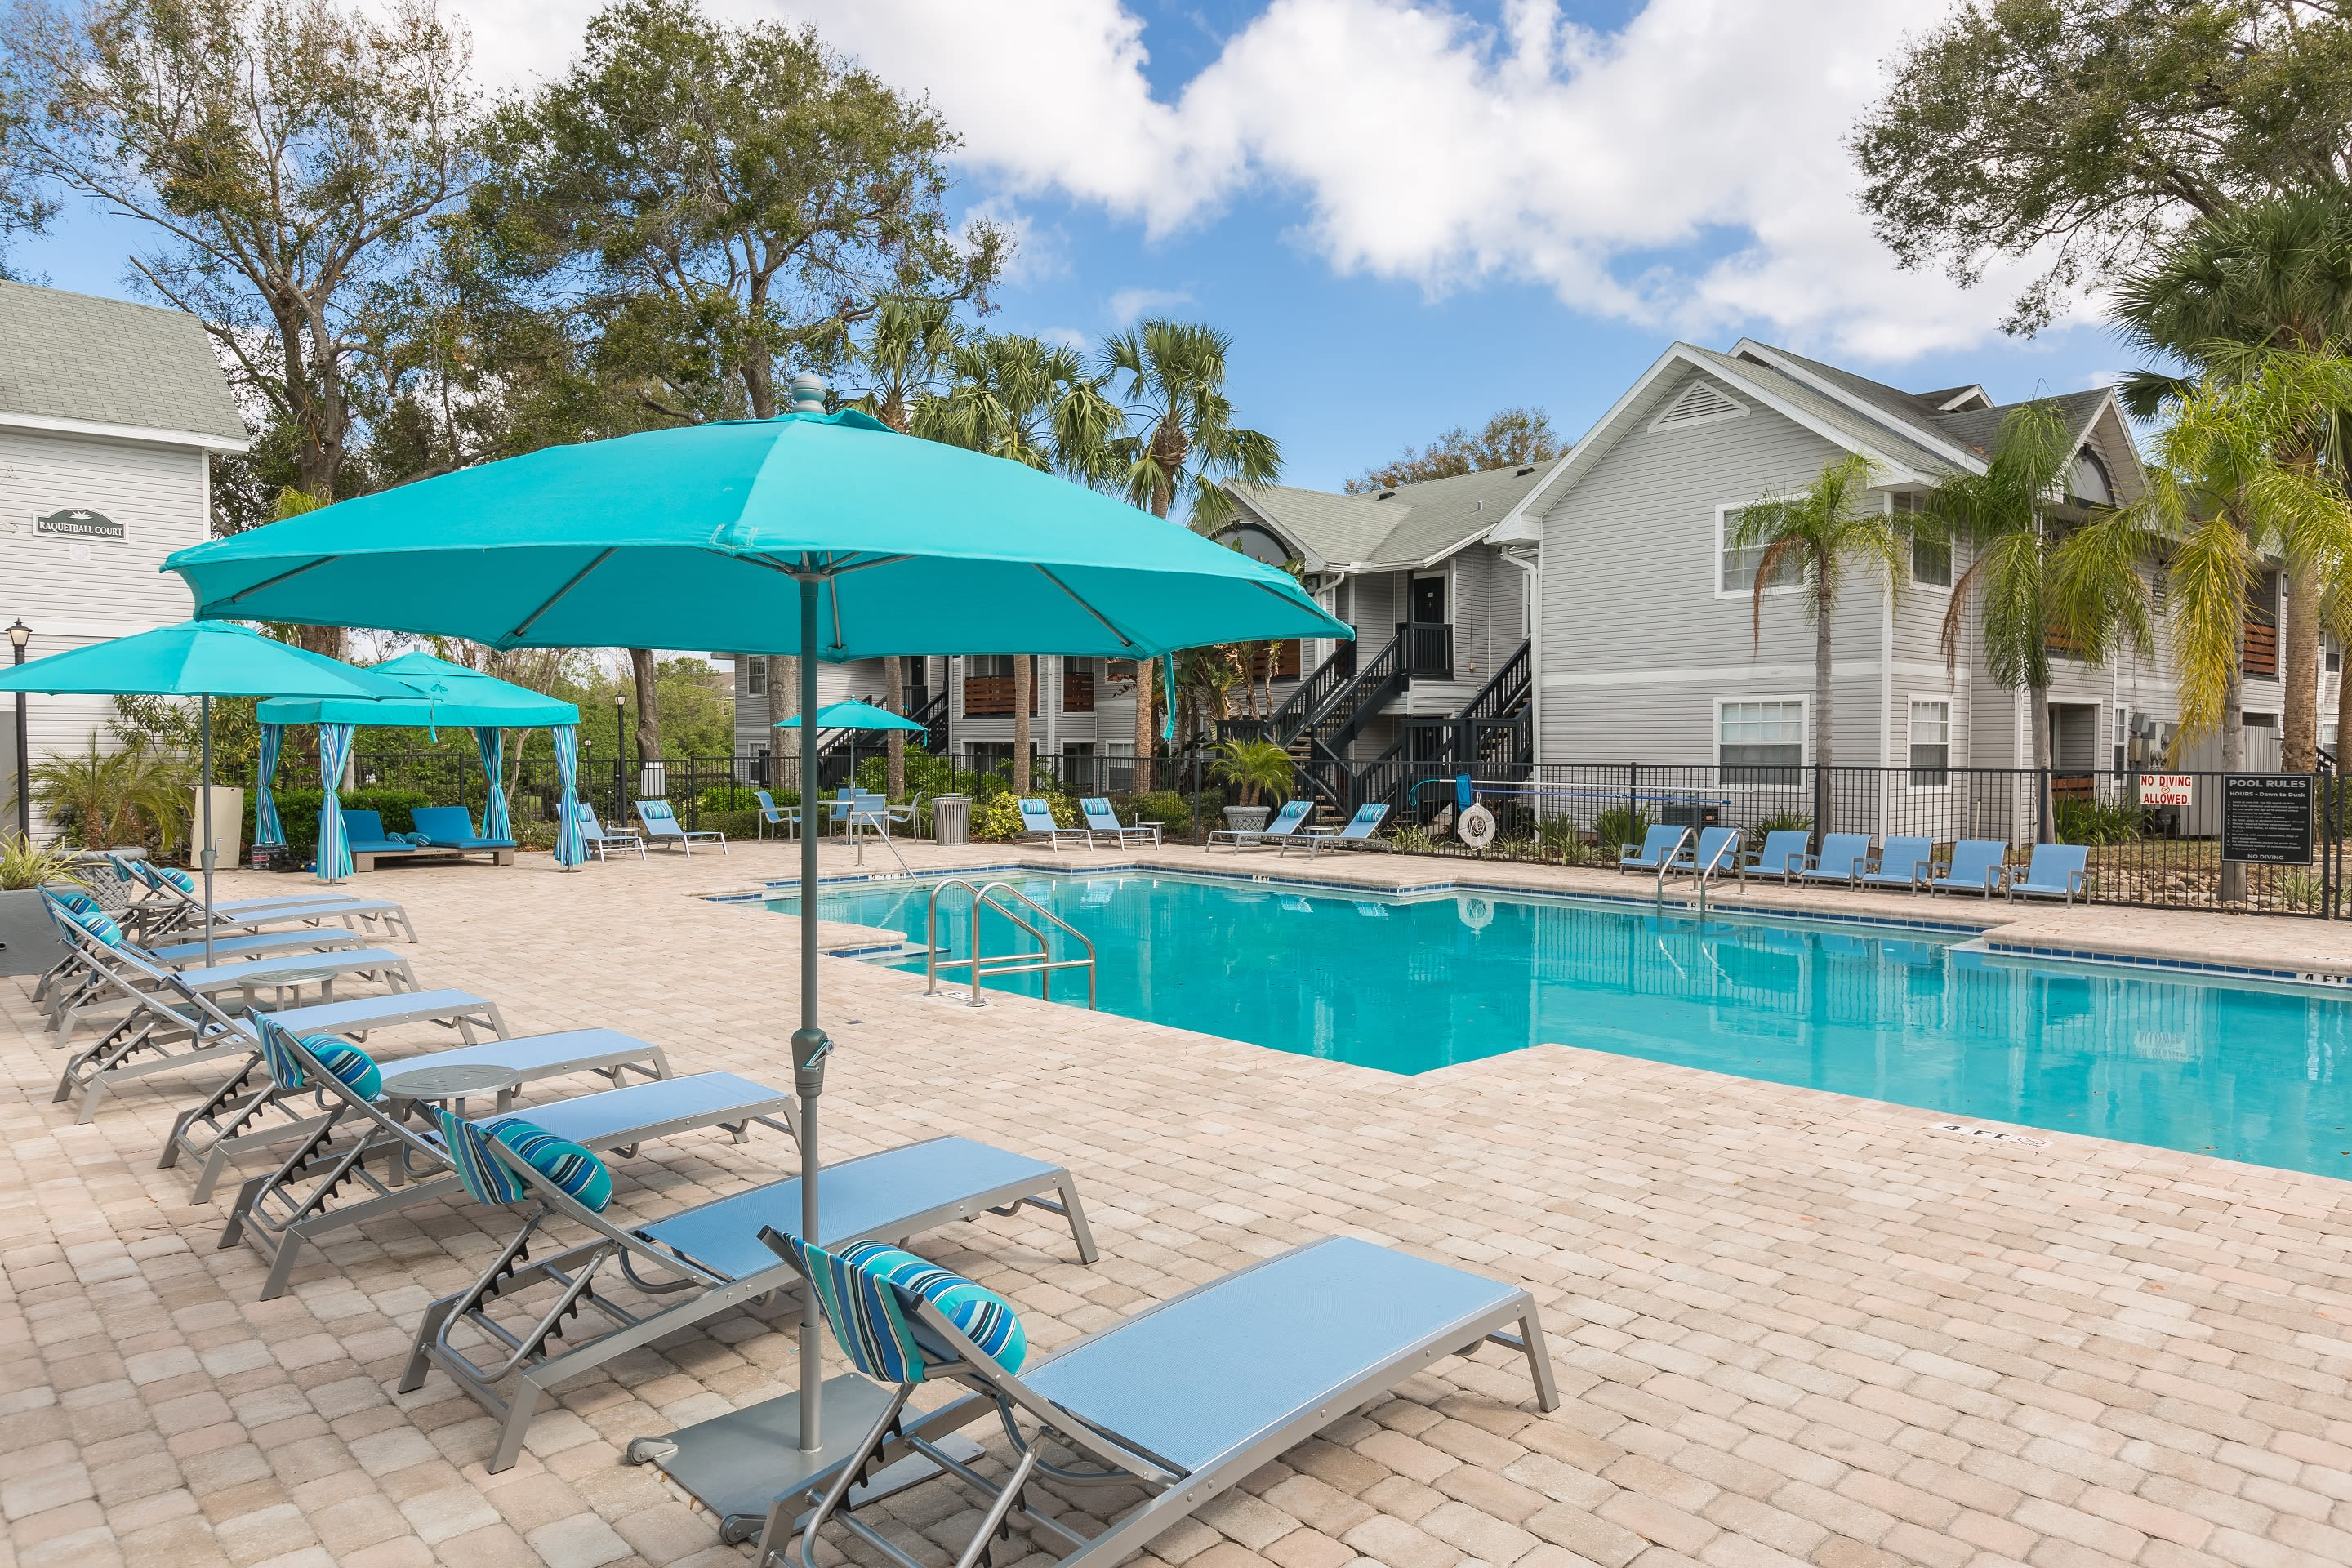 Reserve at Lake Irene offers beautiful homes for rent in Casselberry, FL